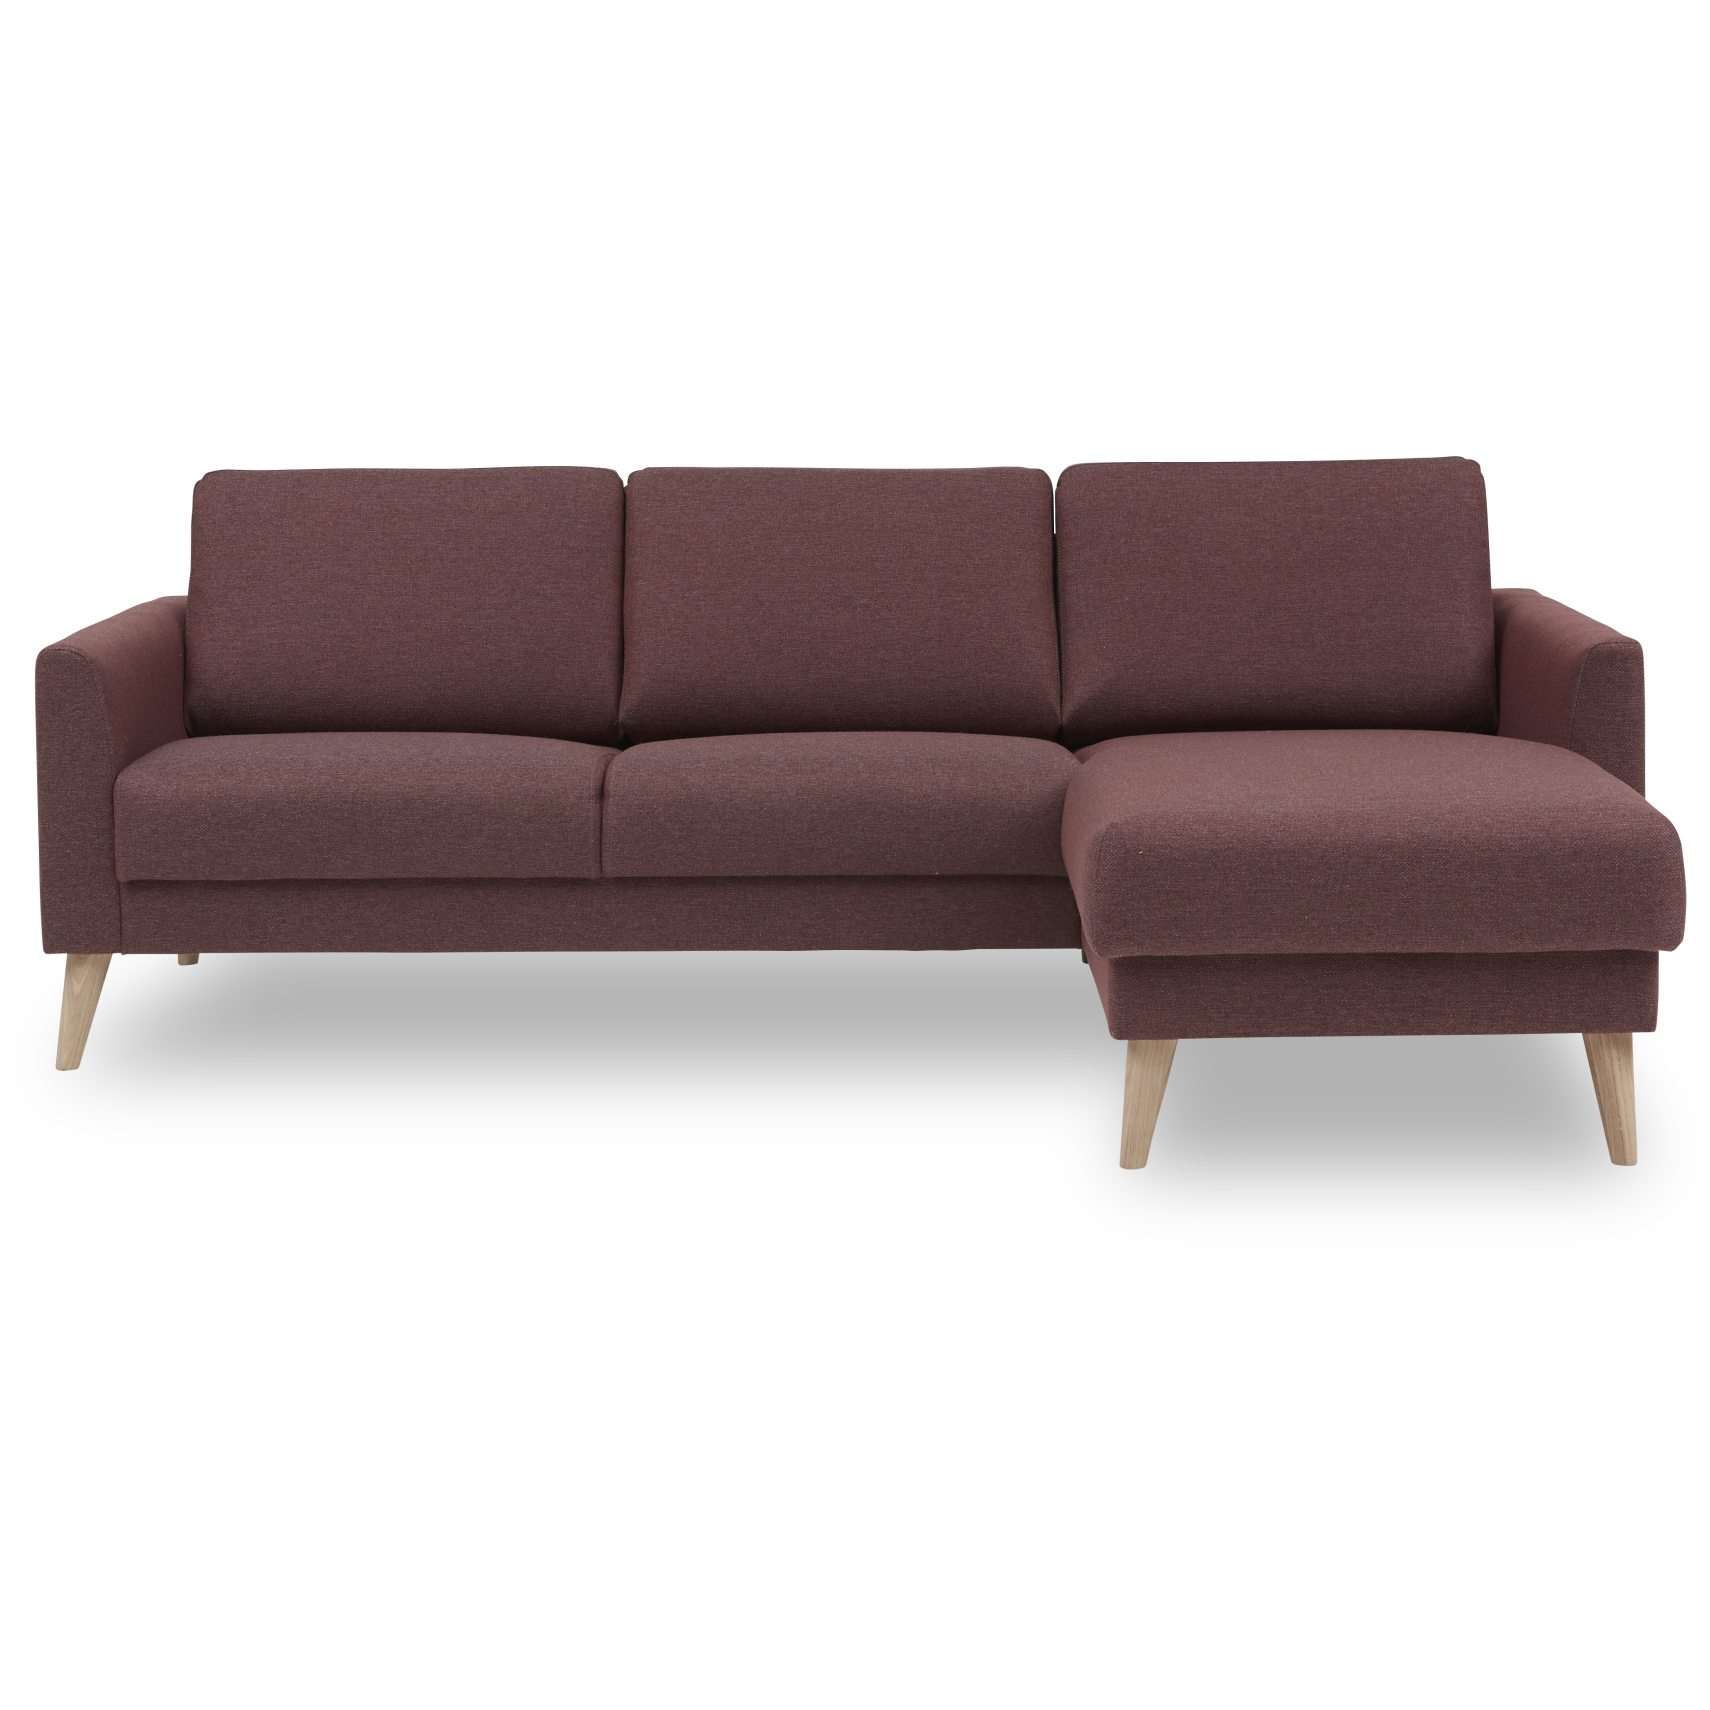 Tushka Sofa med chaiselong - Golf Apple stof og ben i hvidolieret eg